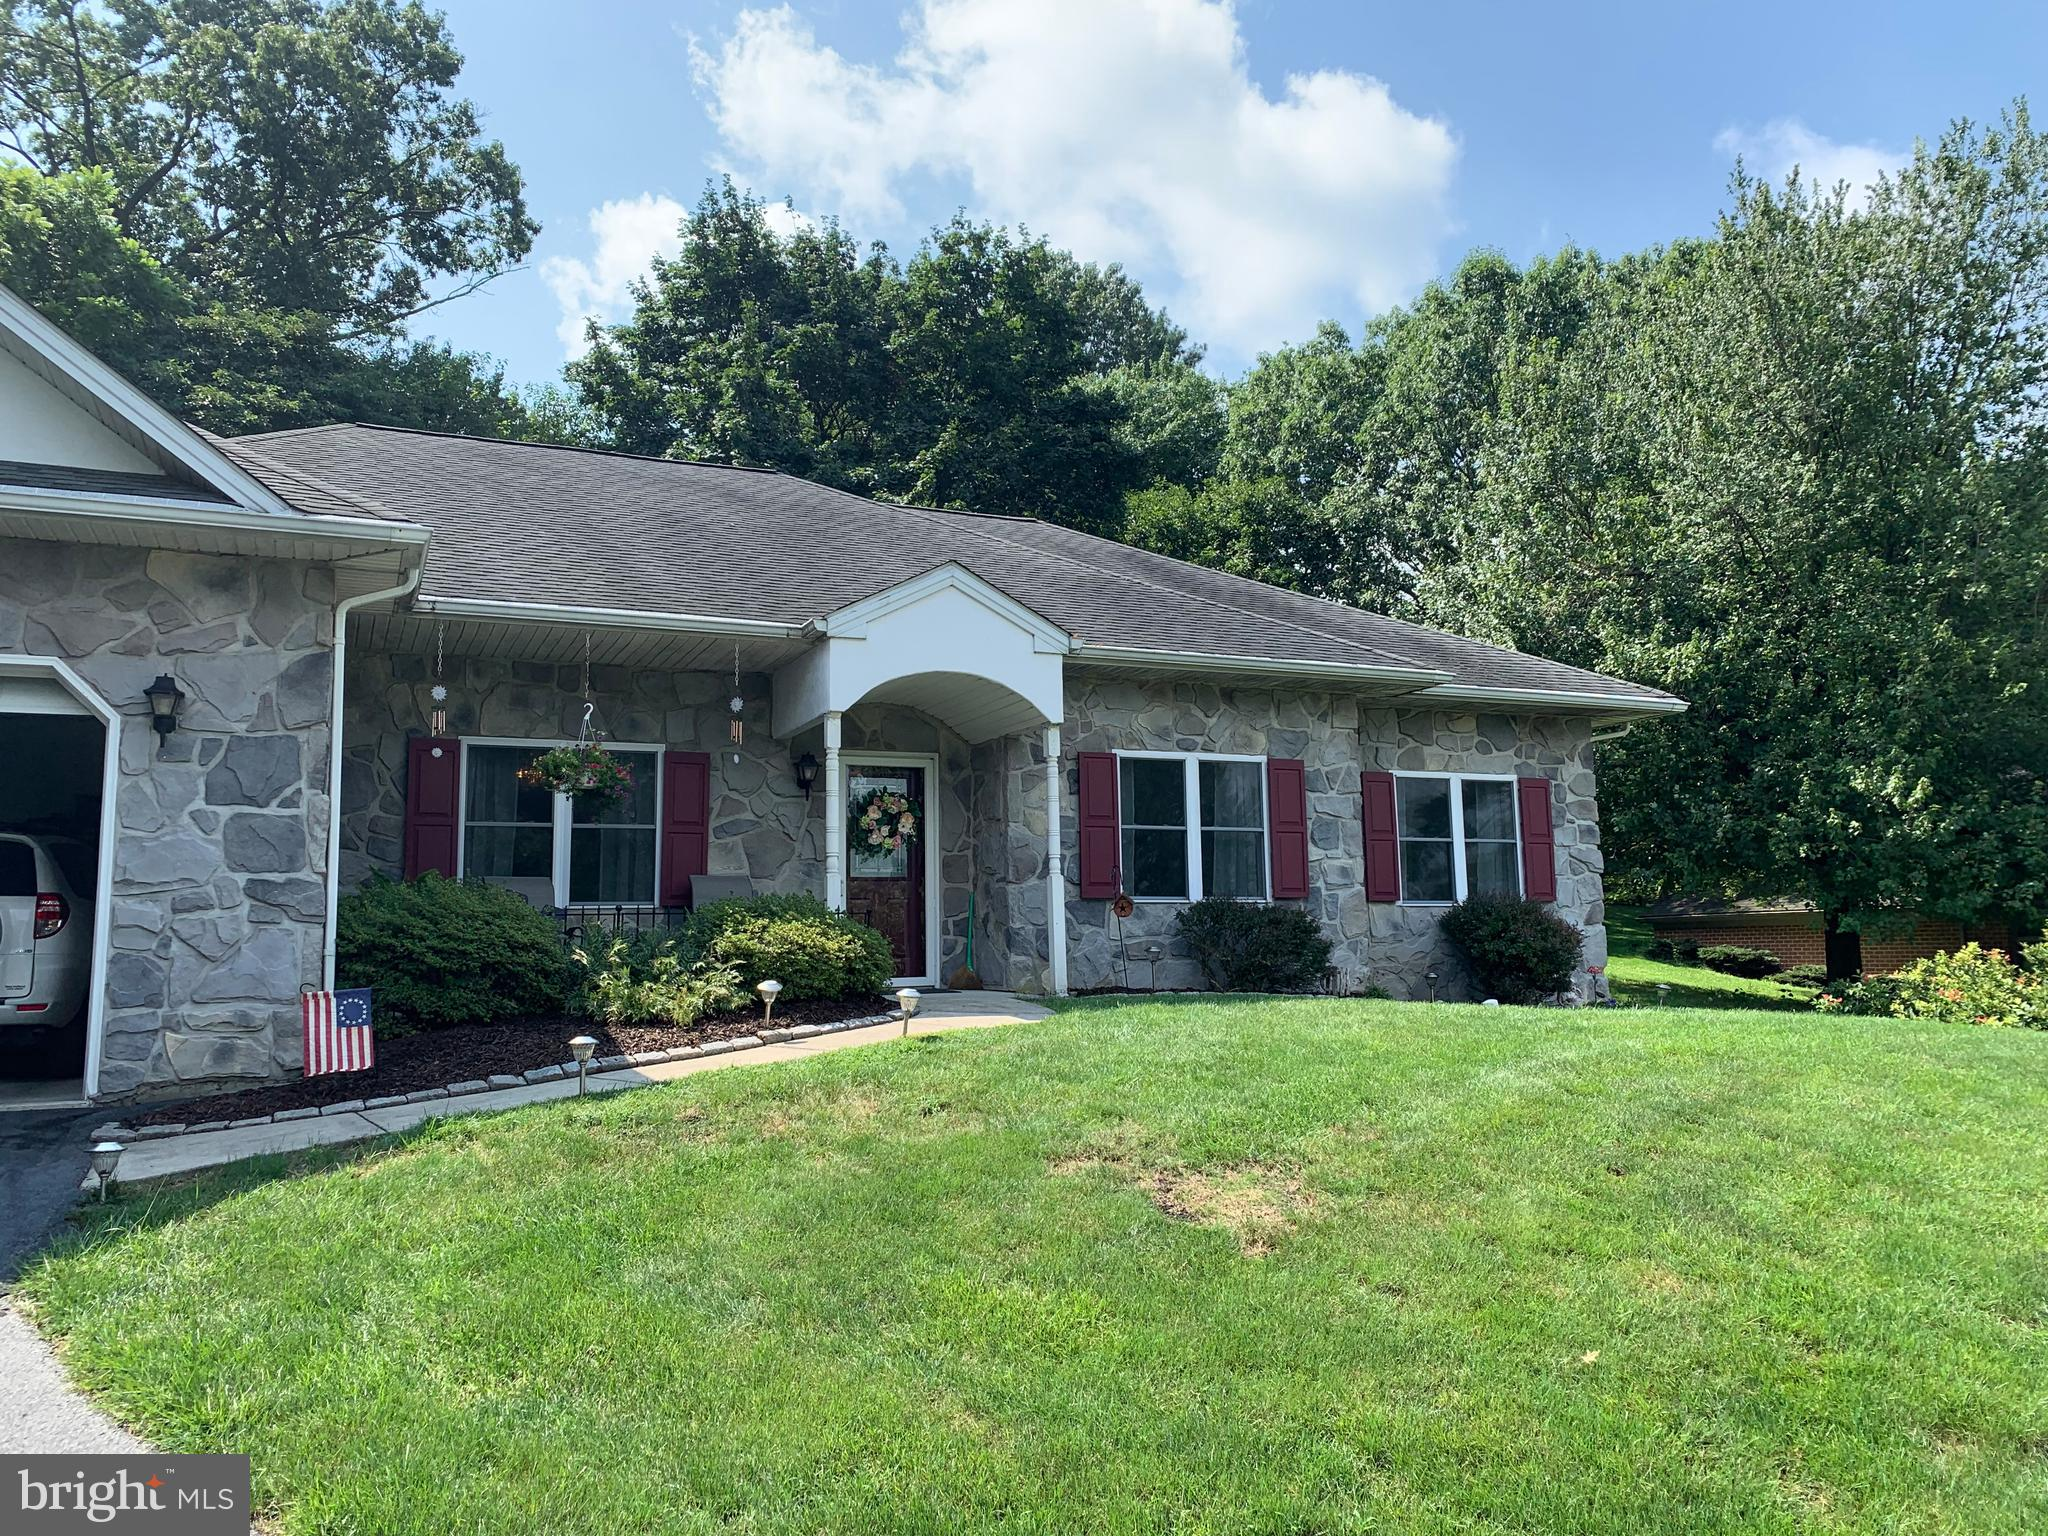 210 MAPLE DRIVE, NEW HOLLAND, PA 17557